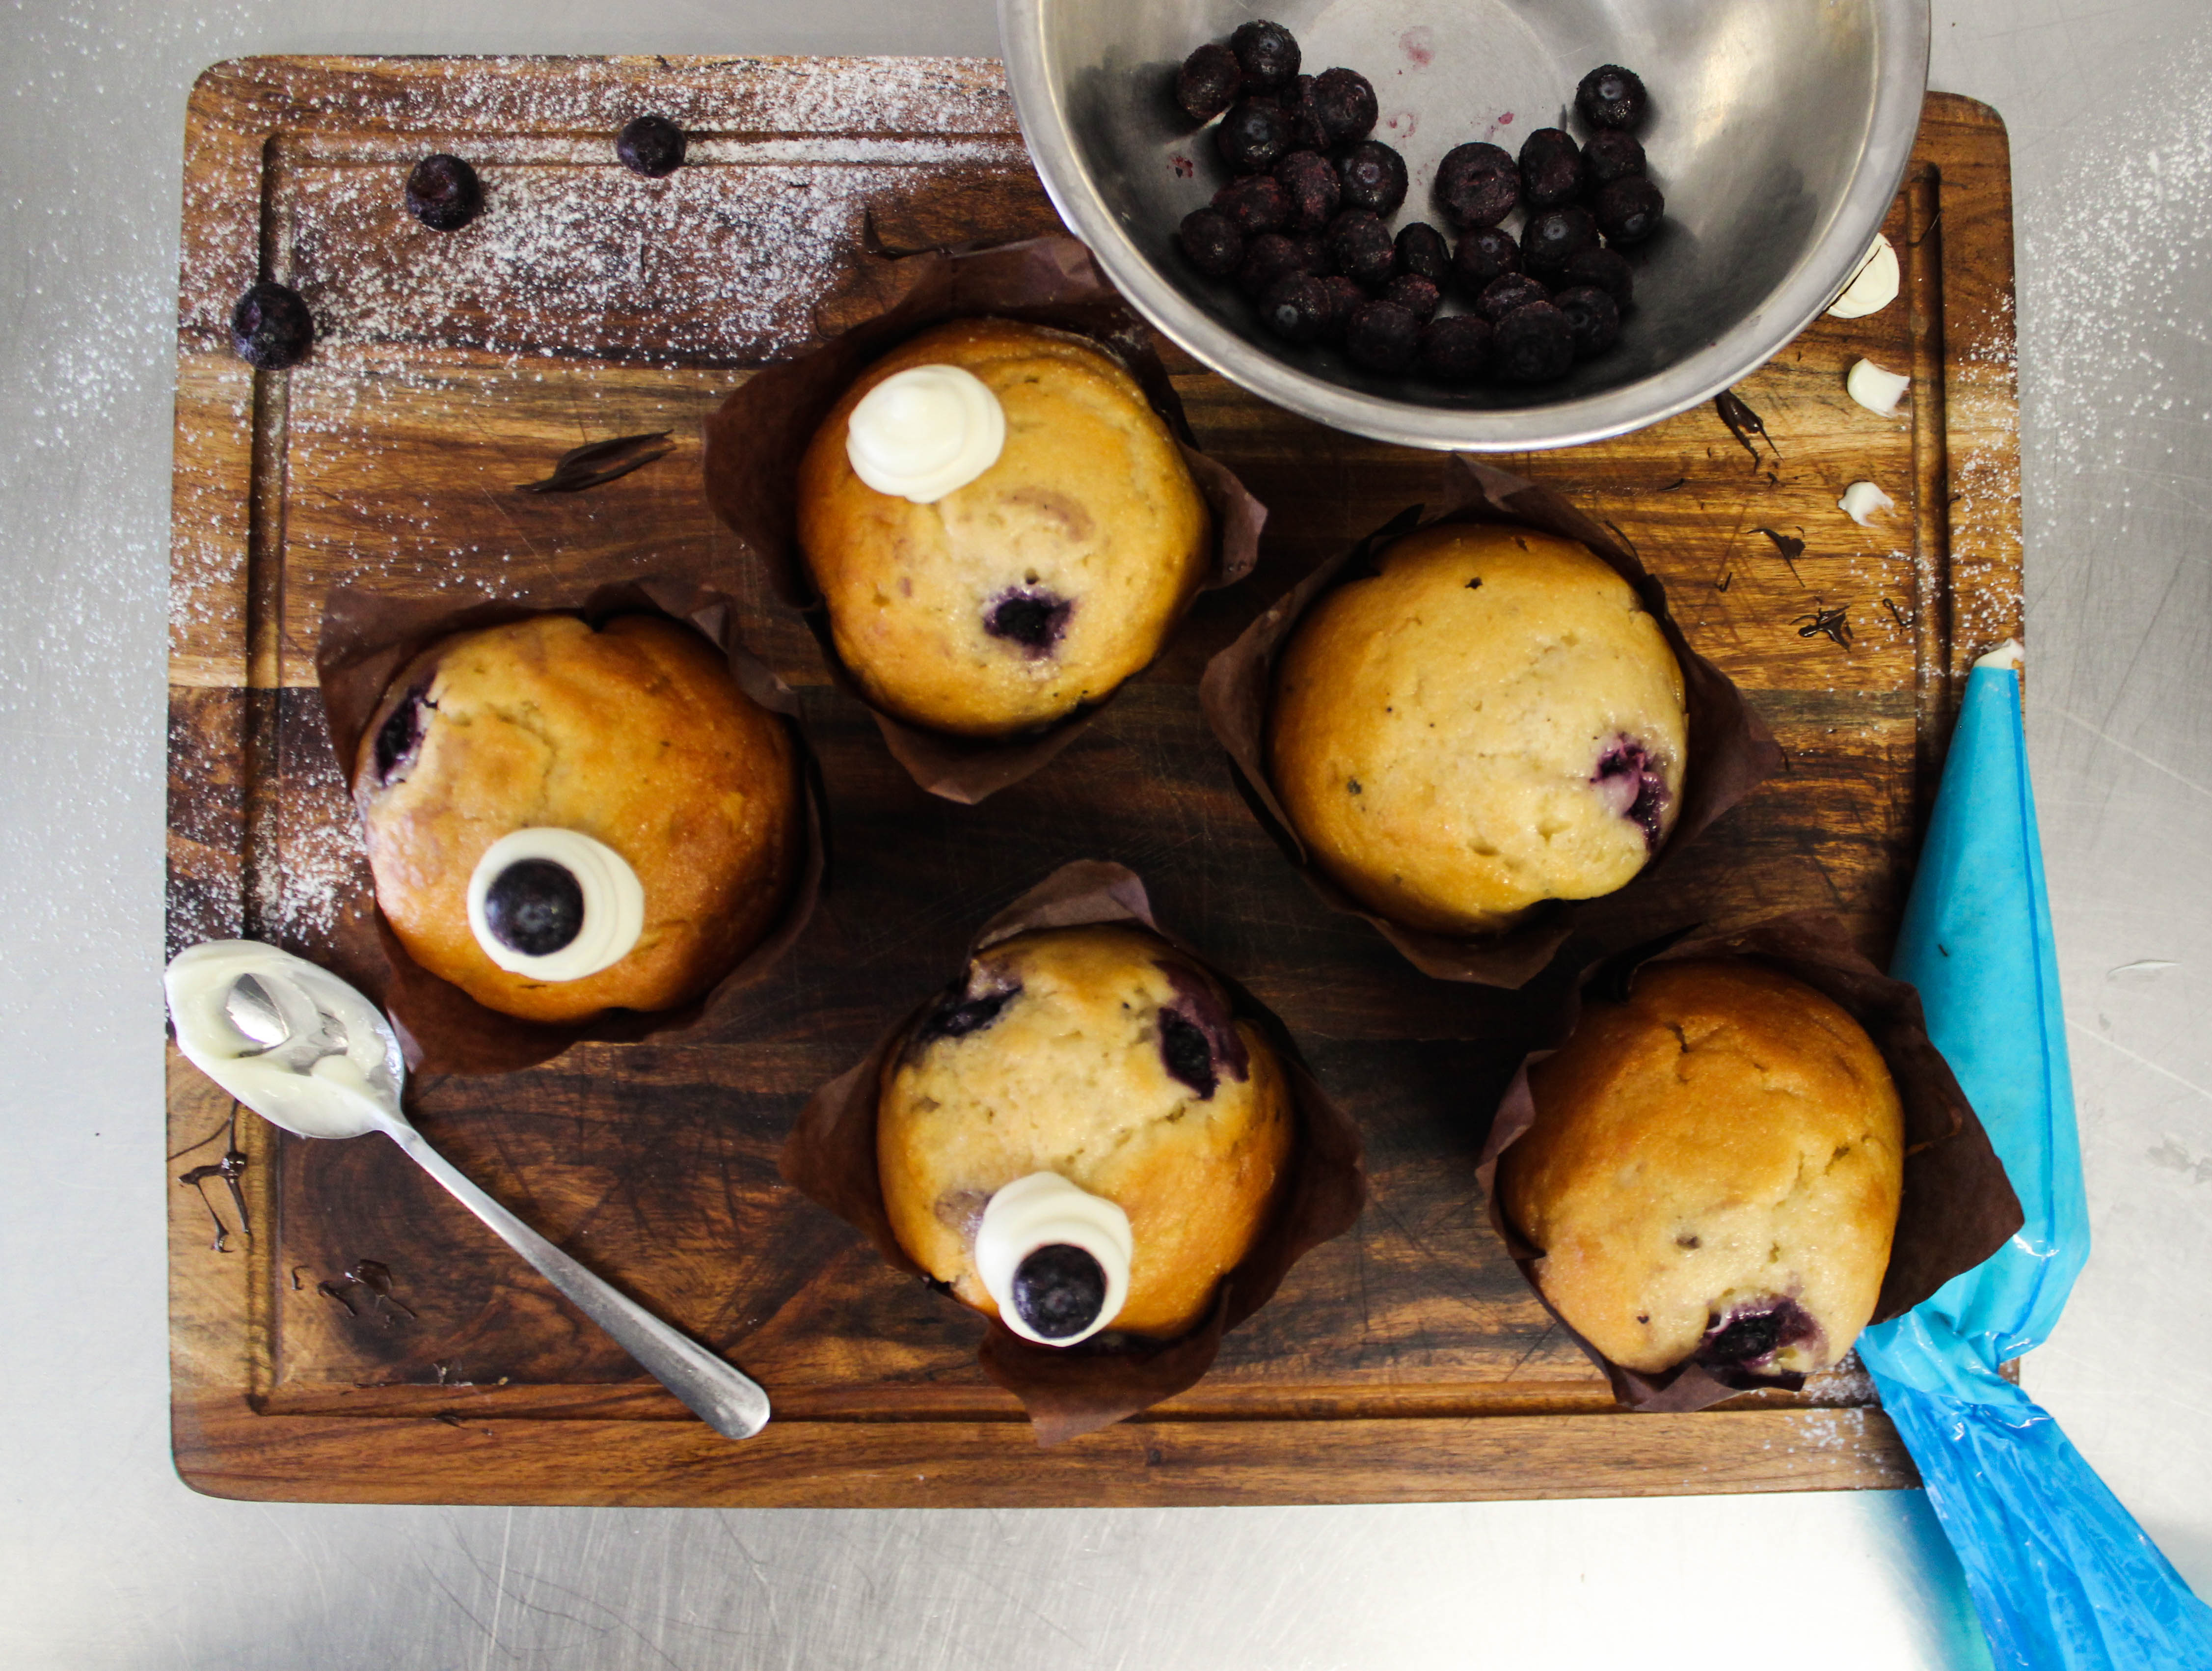 Blueberry and honey muffin